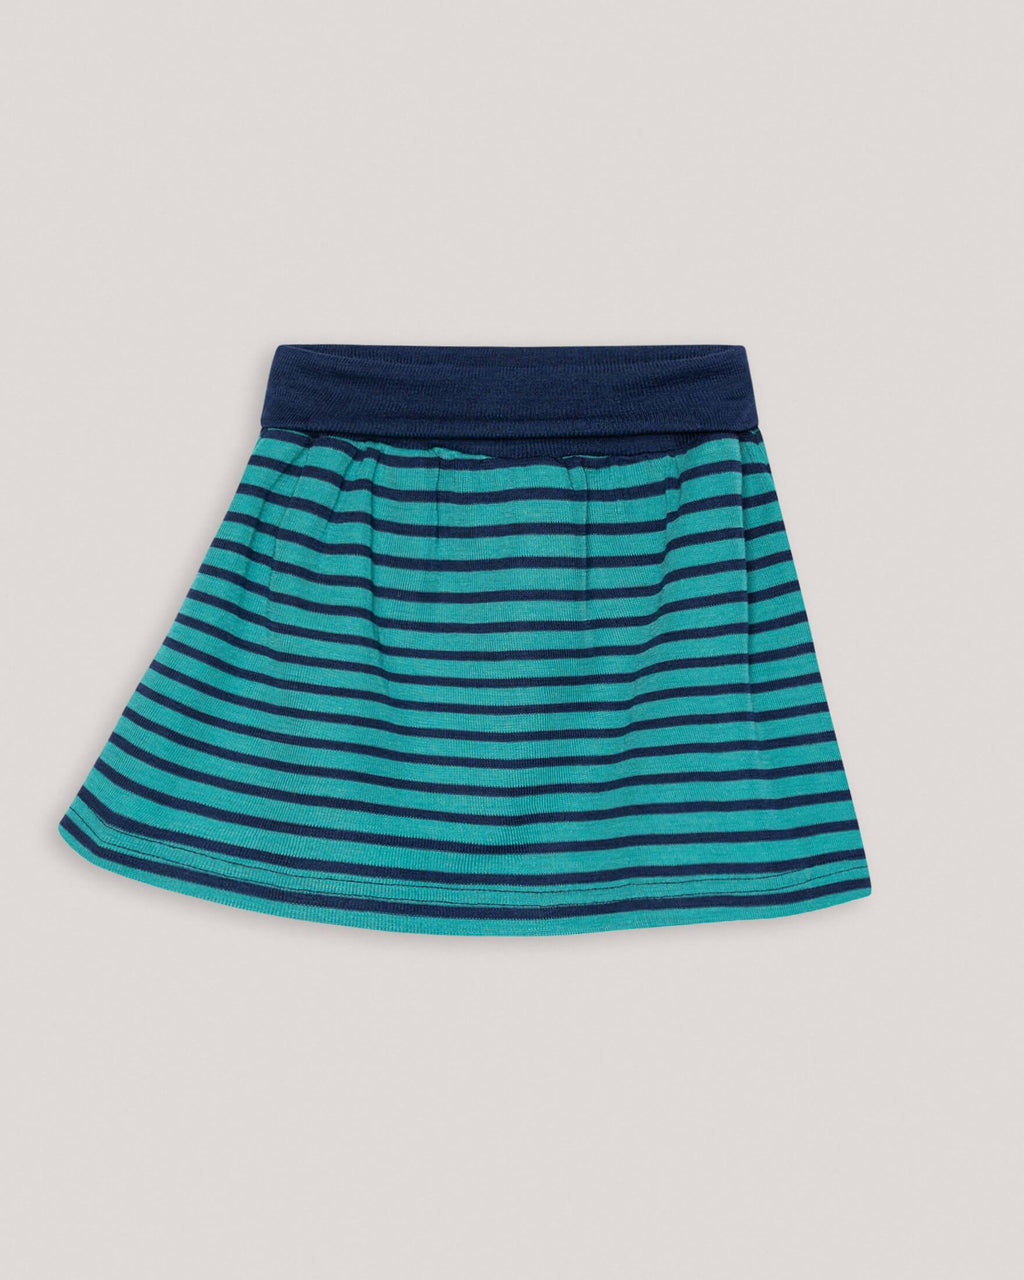 variant_2 | EN Blue Skirt Baby Kids Stripes ENGEL | DE Blauer Rock Babys Kinder mit Streifen ENGEL